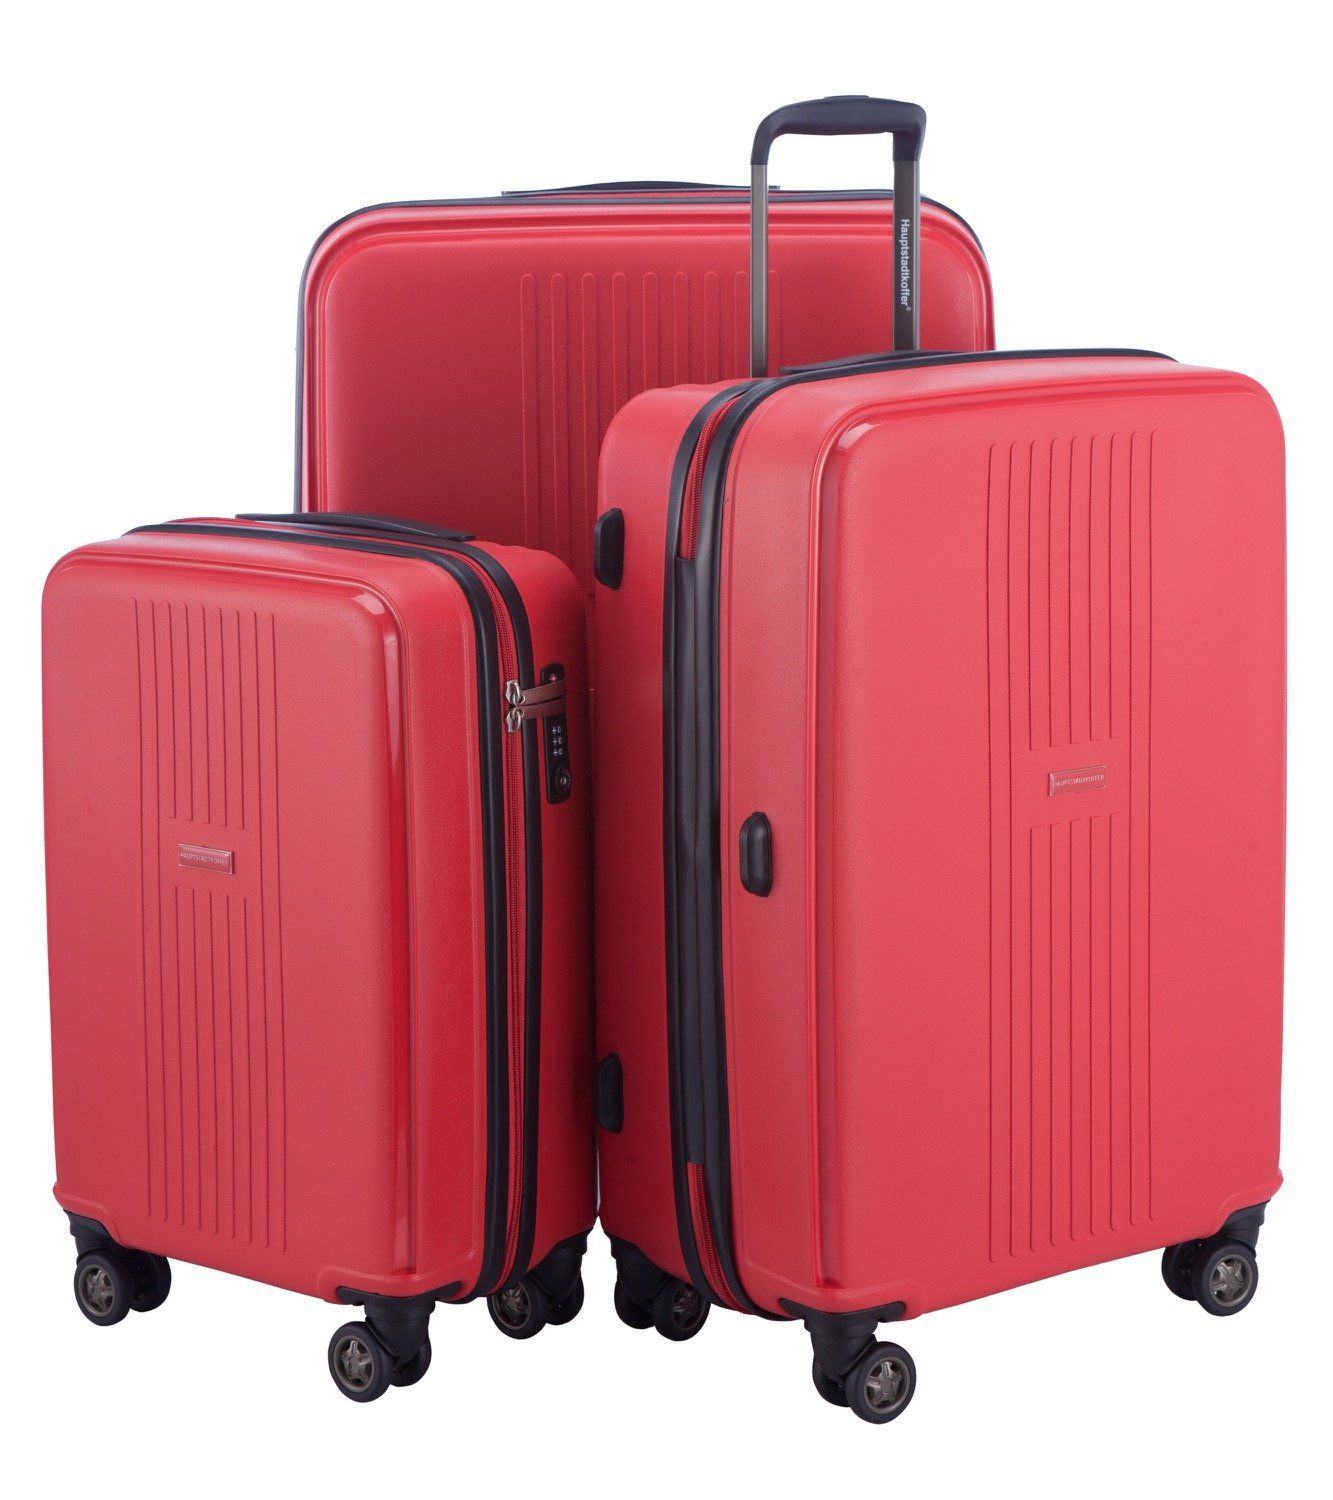 104c726f6425 HAUPTSTADTKOFFER - F-Hain - Set of 3 Hard-side Luggages matt ...